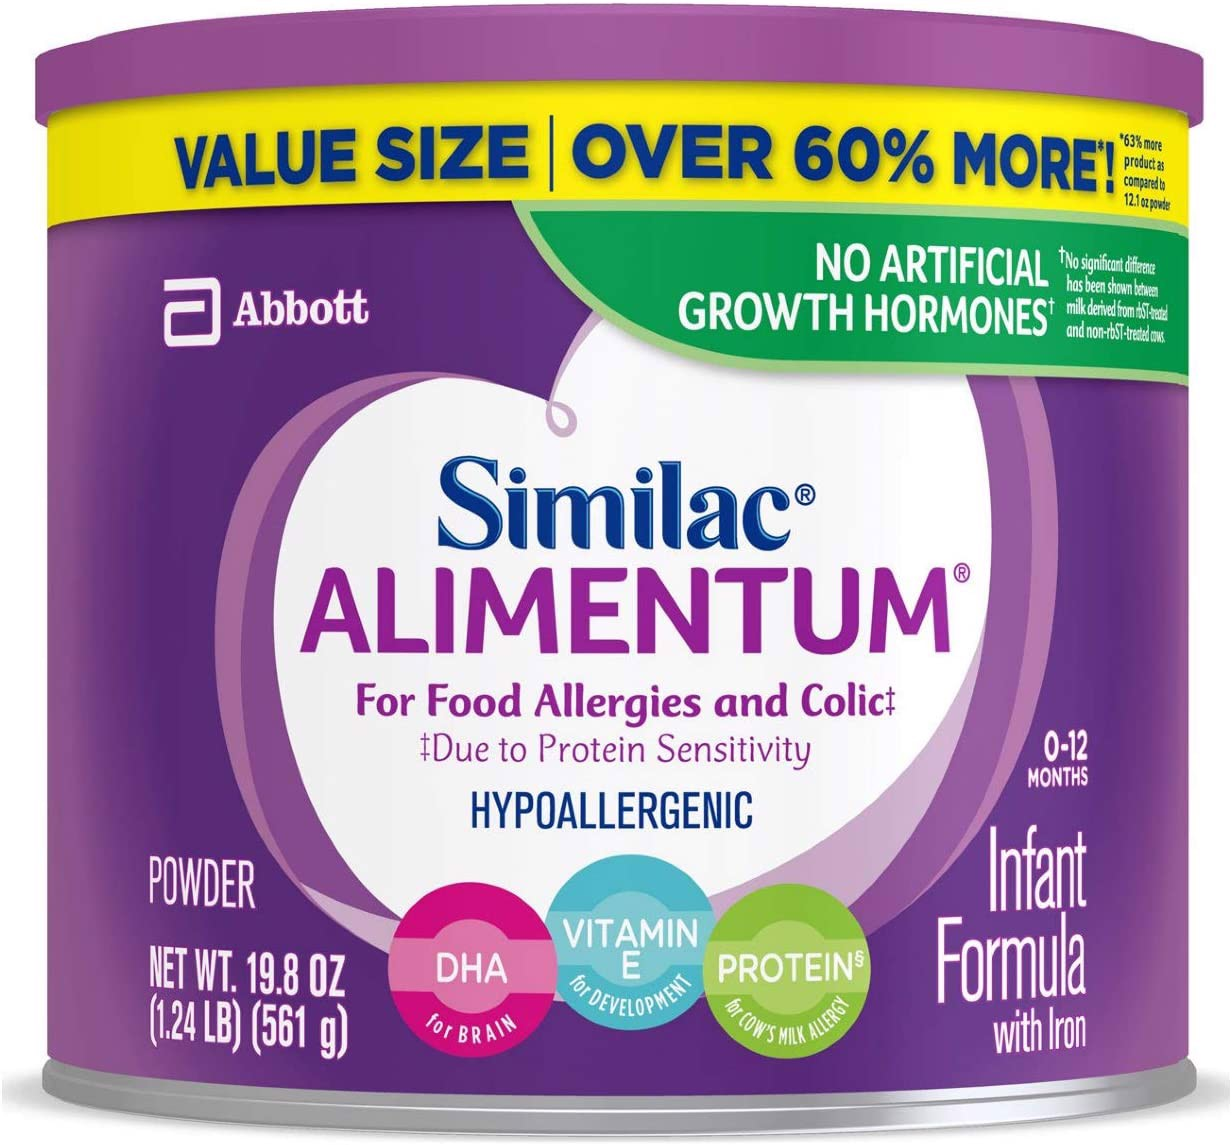 Similac Alimentum Infant Formula Powder 561g